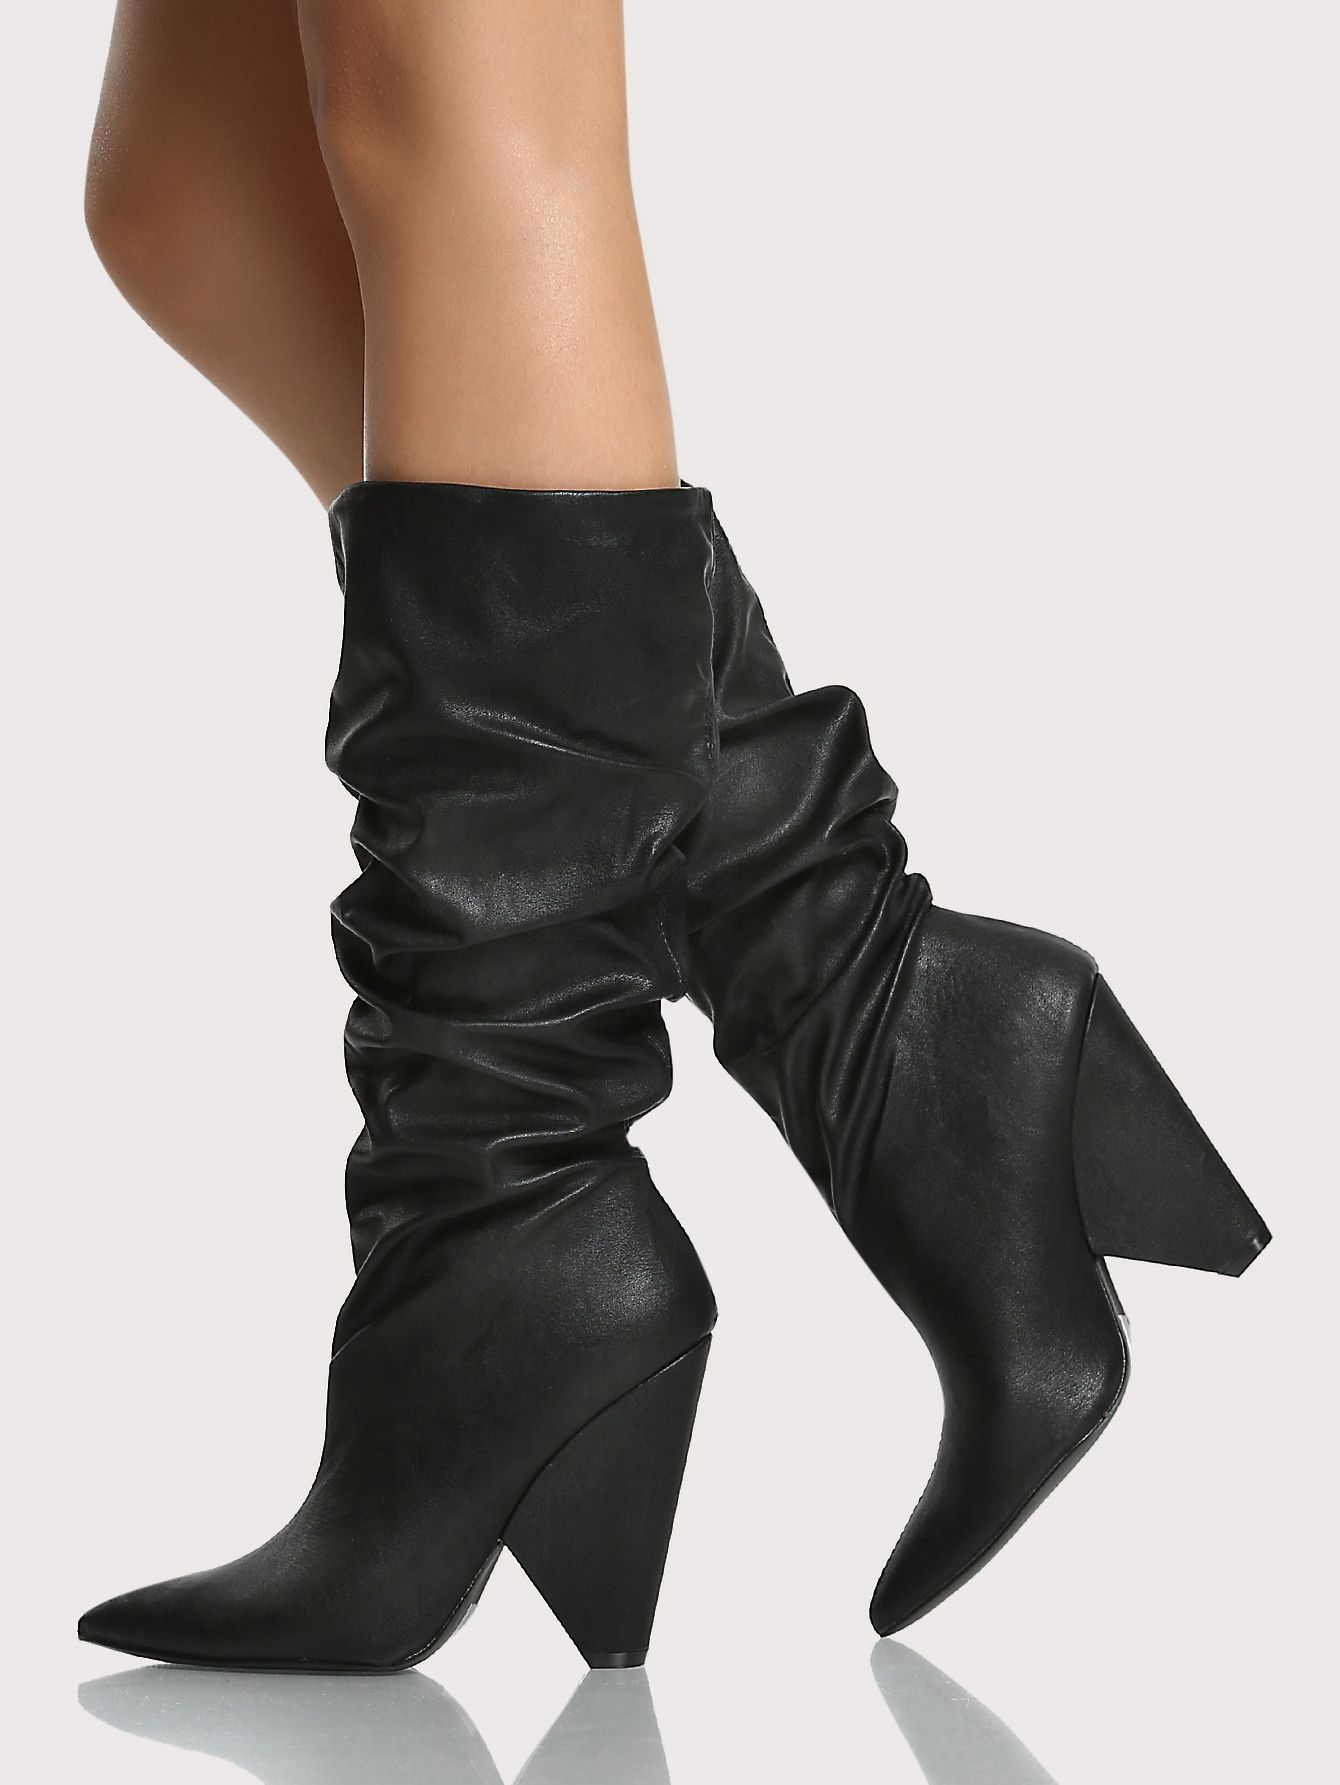 1ff1b5d75b Shop Slouch Triangle Heel Boots BLACK online. SheIn offers Slouch Triangle Heel  Boots BLACK & more to fit your fashionable needs.